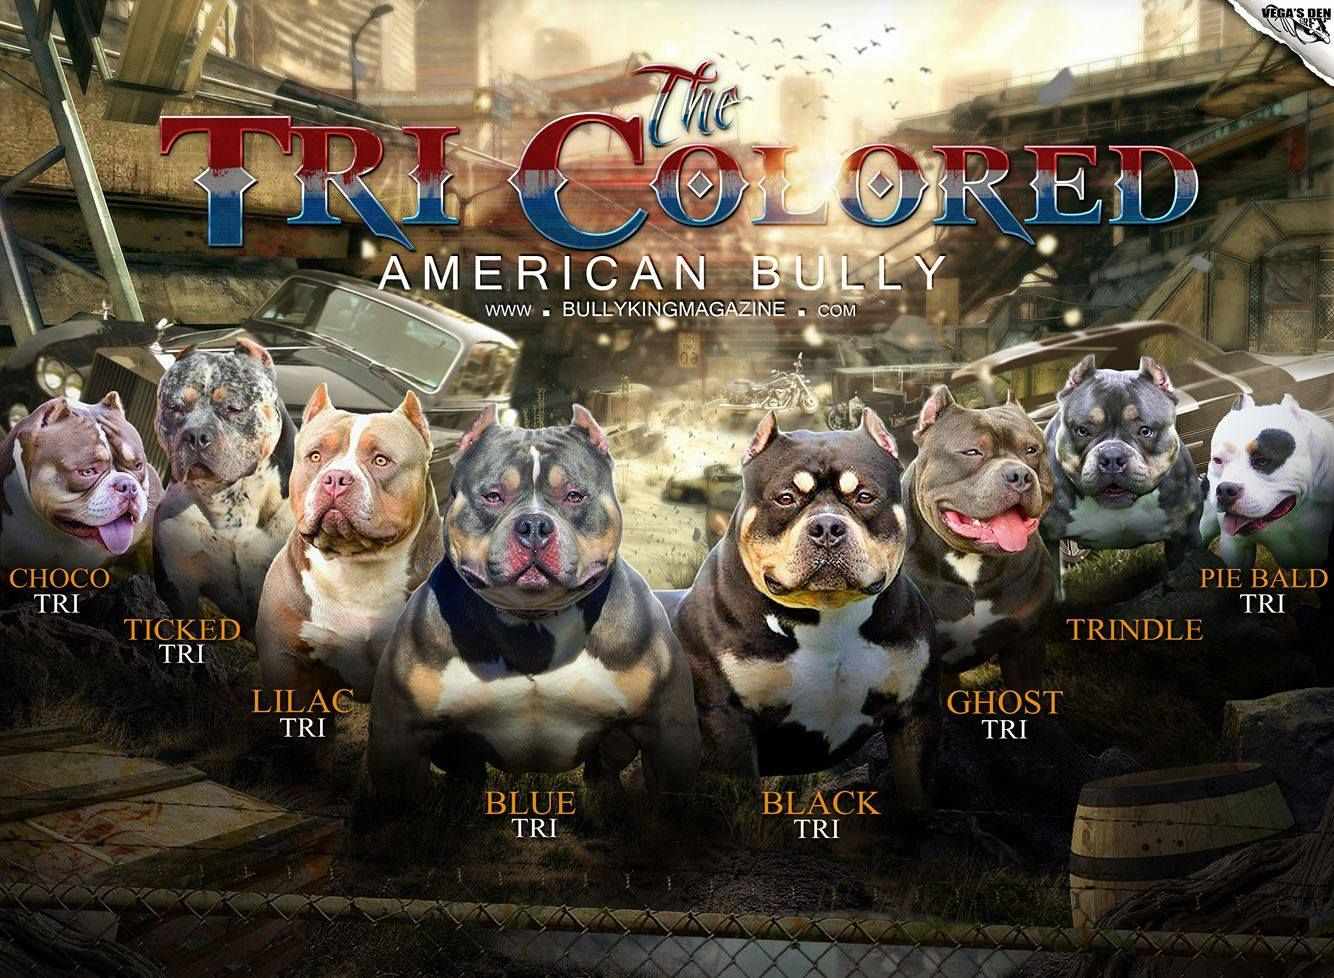 The Many Colors Of The American Bully In 2020 Bully Breeds American Bully Bullying